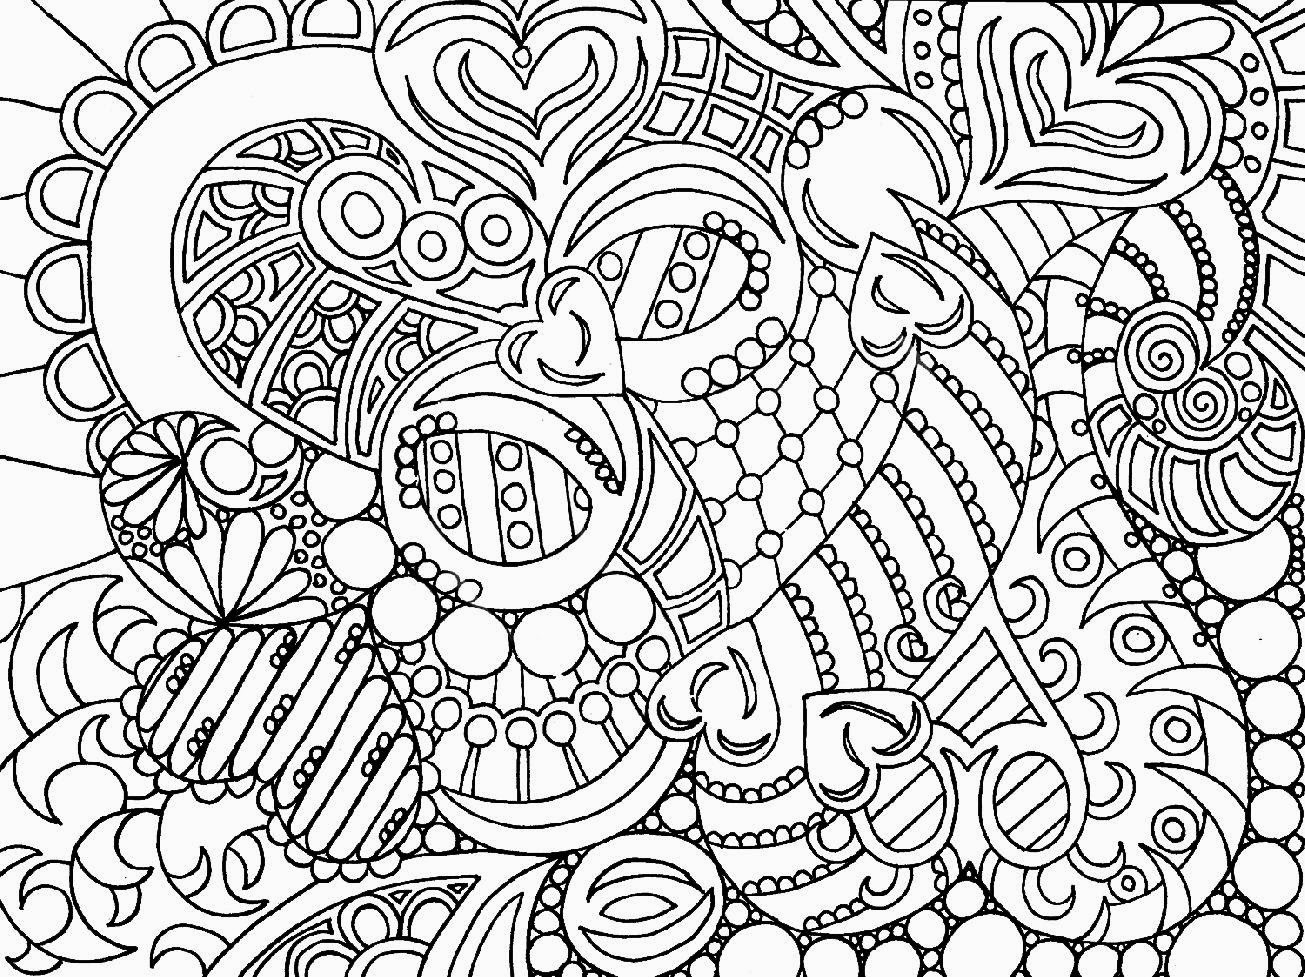 Adult coloring sheets free coloring sheet for Large printable coloring pages